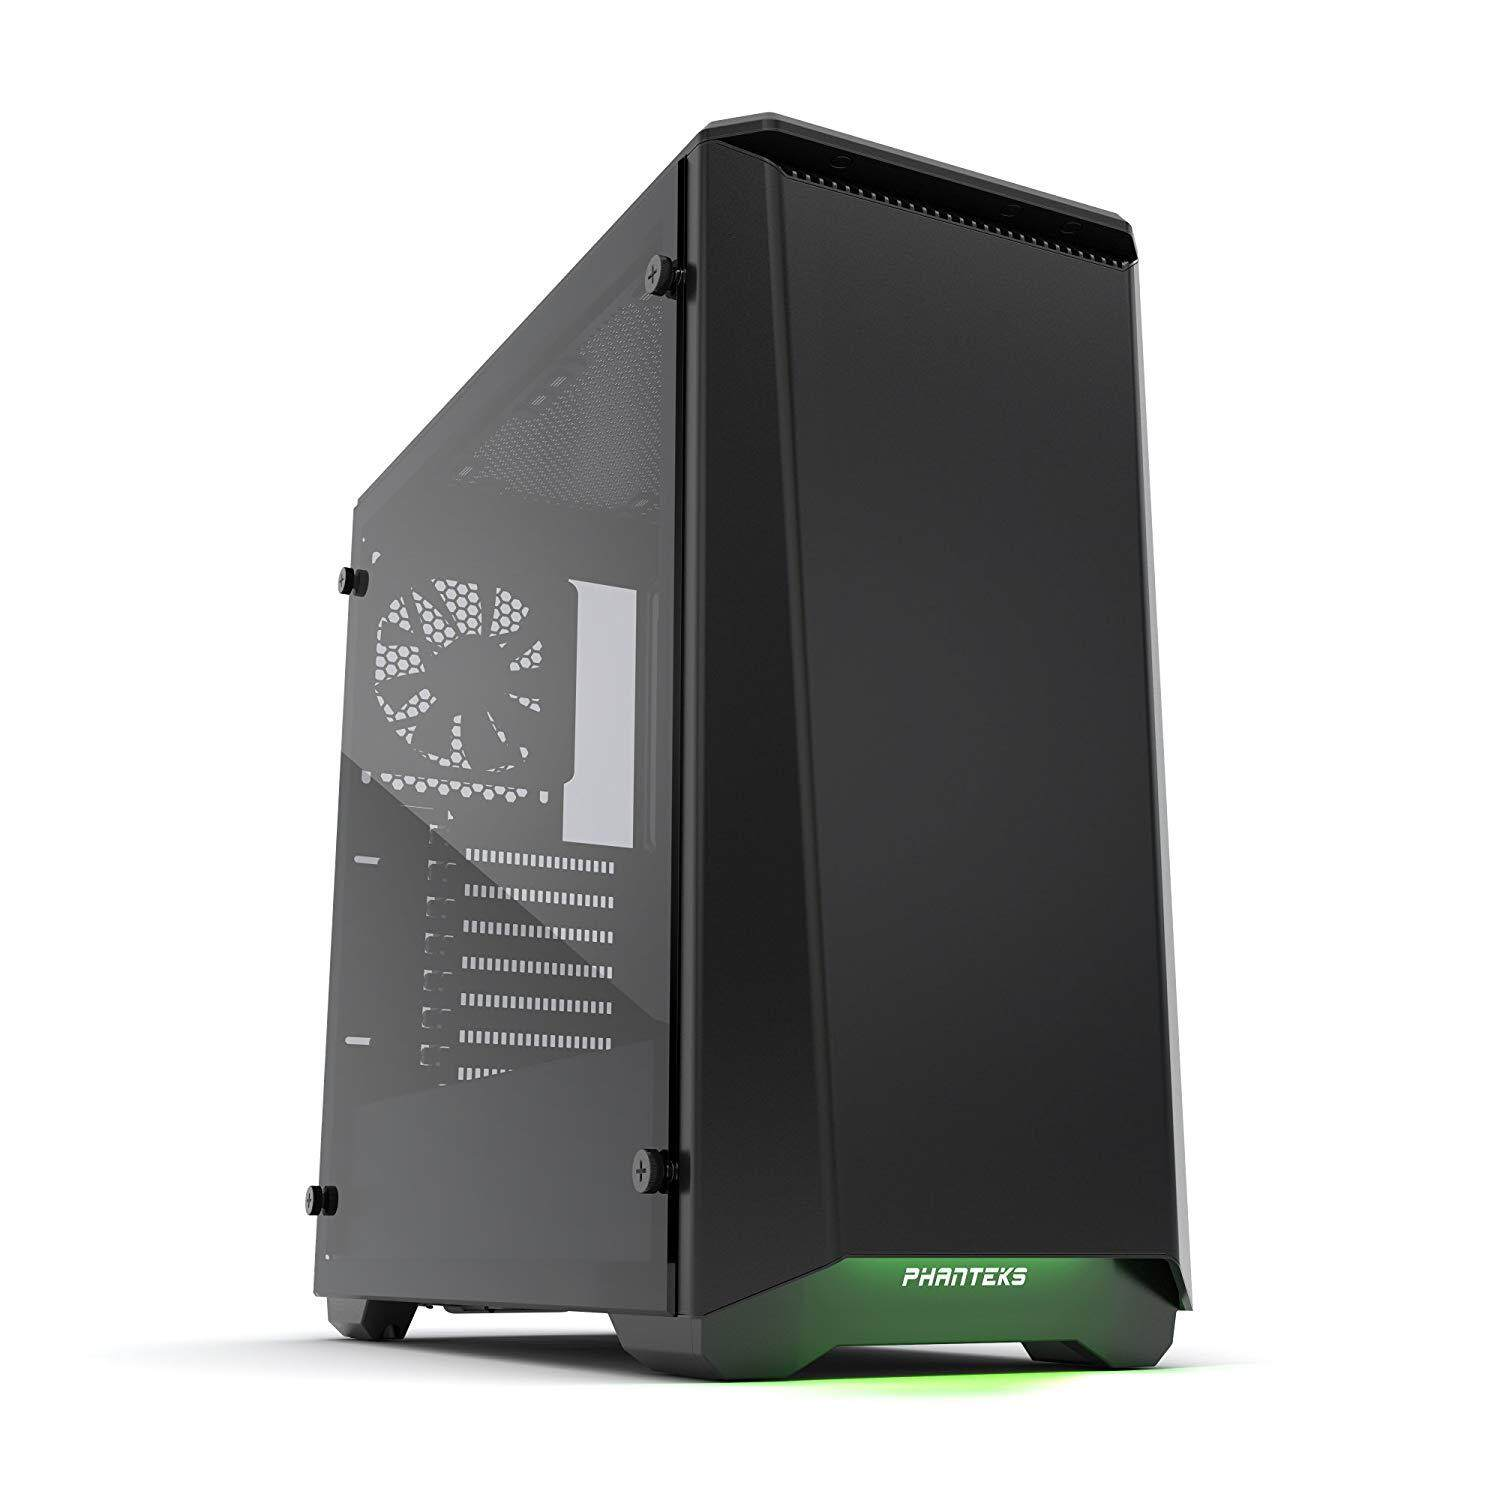 PHANTEKS ECLIPSE P400 TEMPERED GLASS BLACK CHASSIS Malaysia